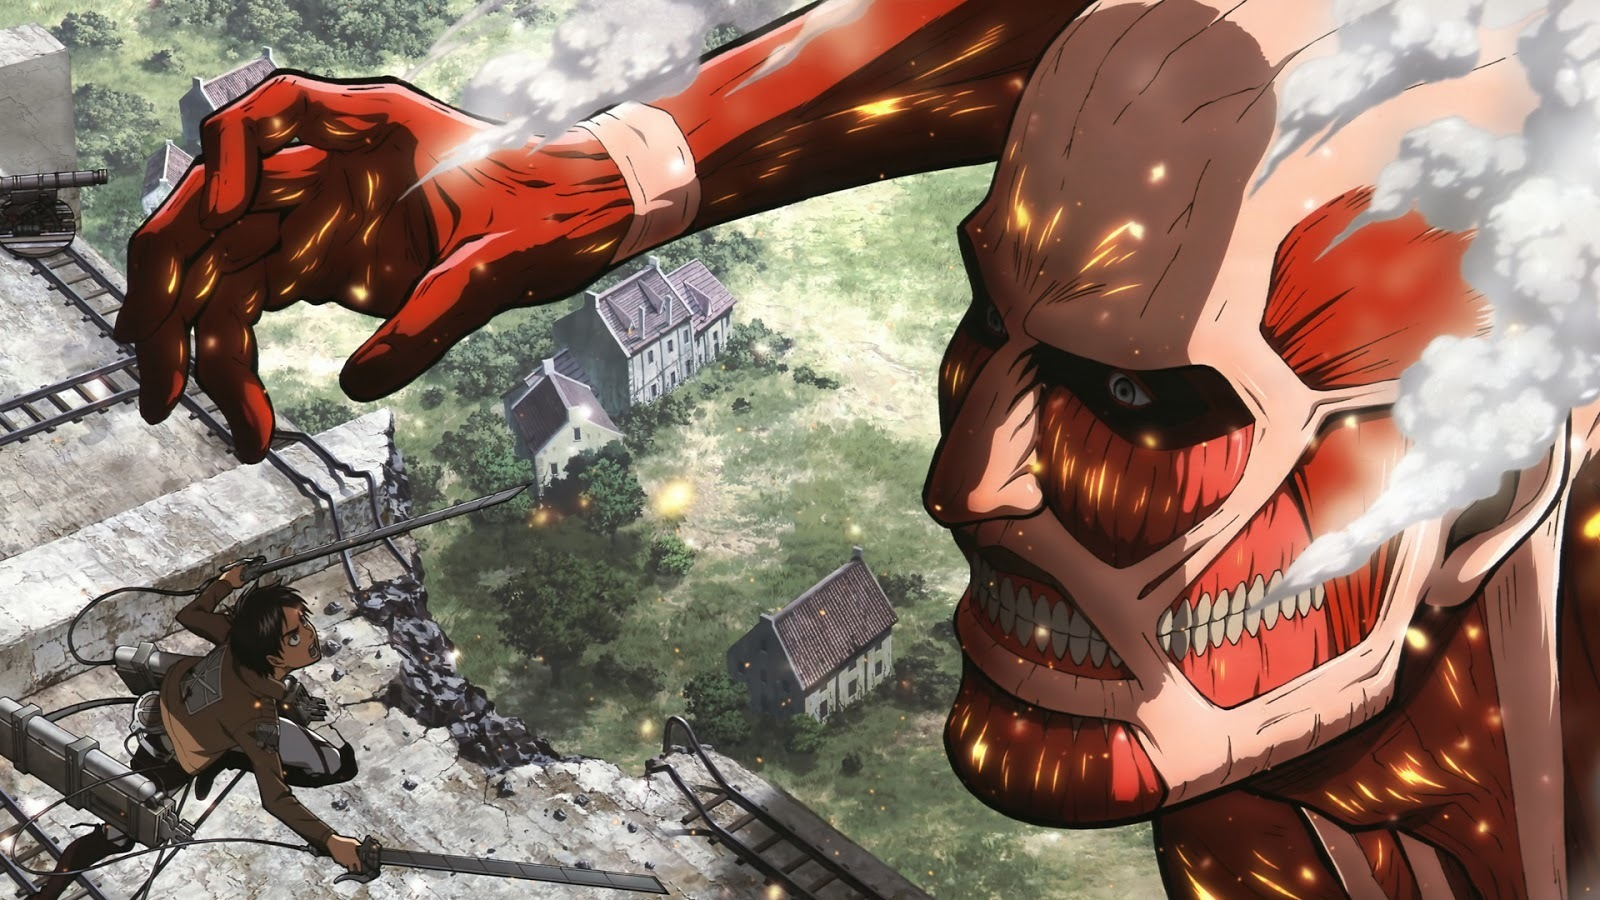 Attack On Titan Poster Shingeki Watercolor Wall Art Otaku Anime Poster Gift R18